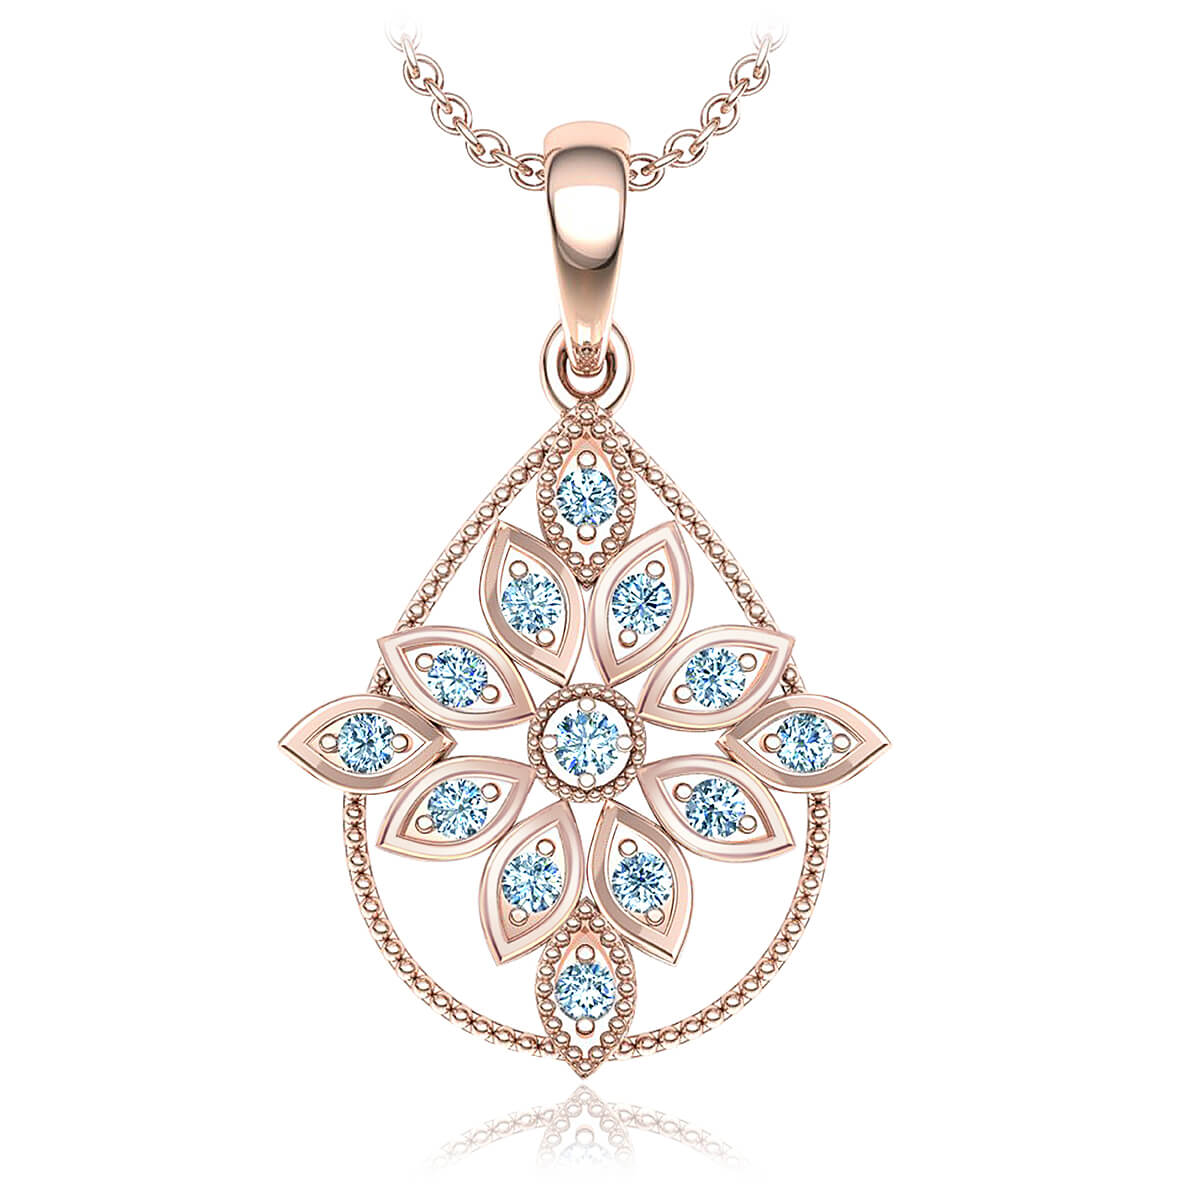 Gatsby Diamond Necklace (1/6 CT. TW.)